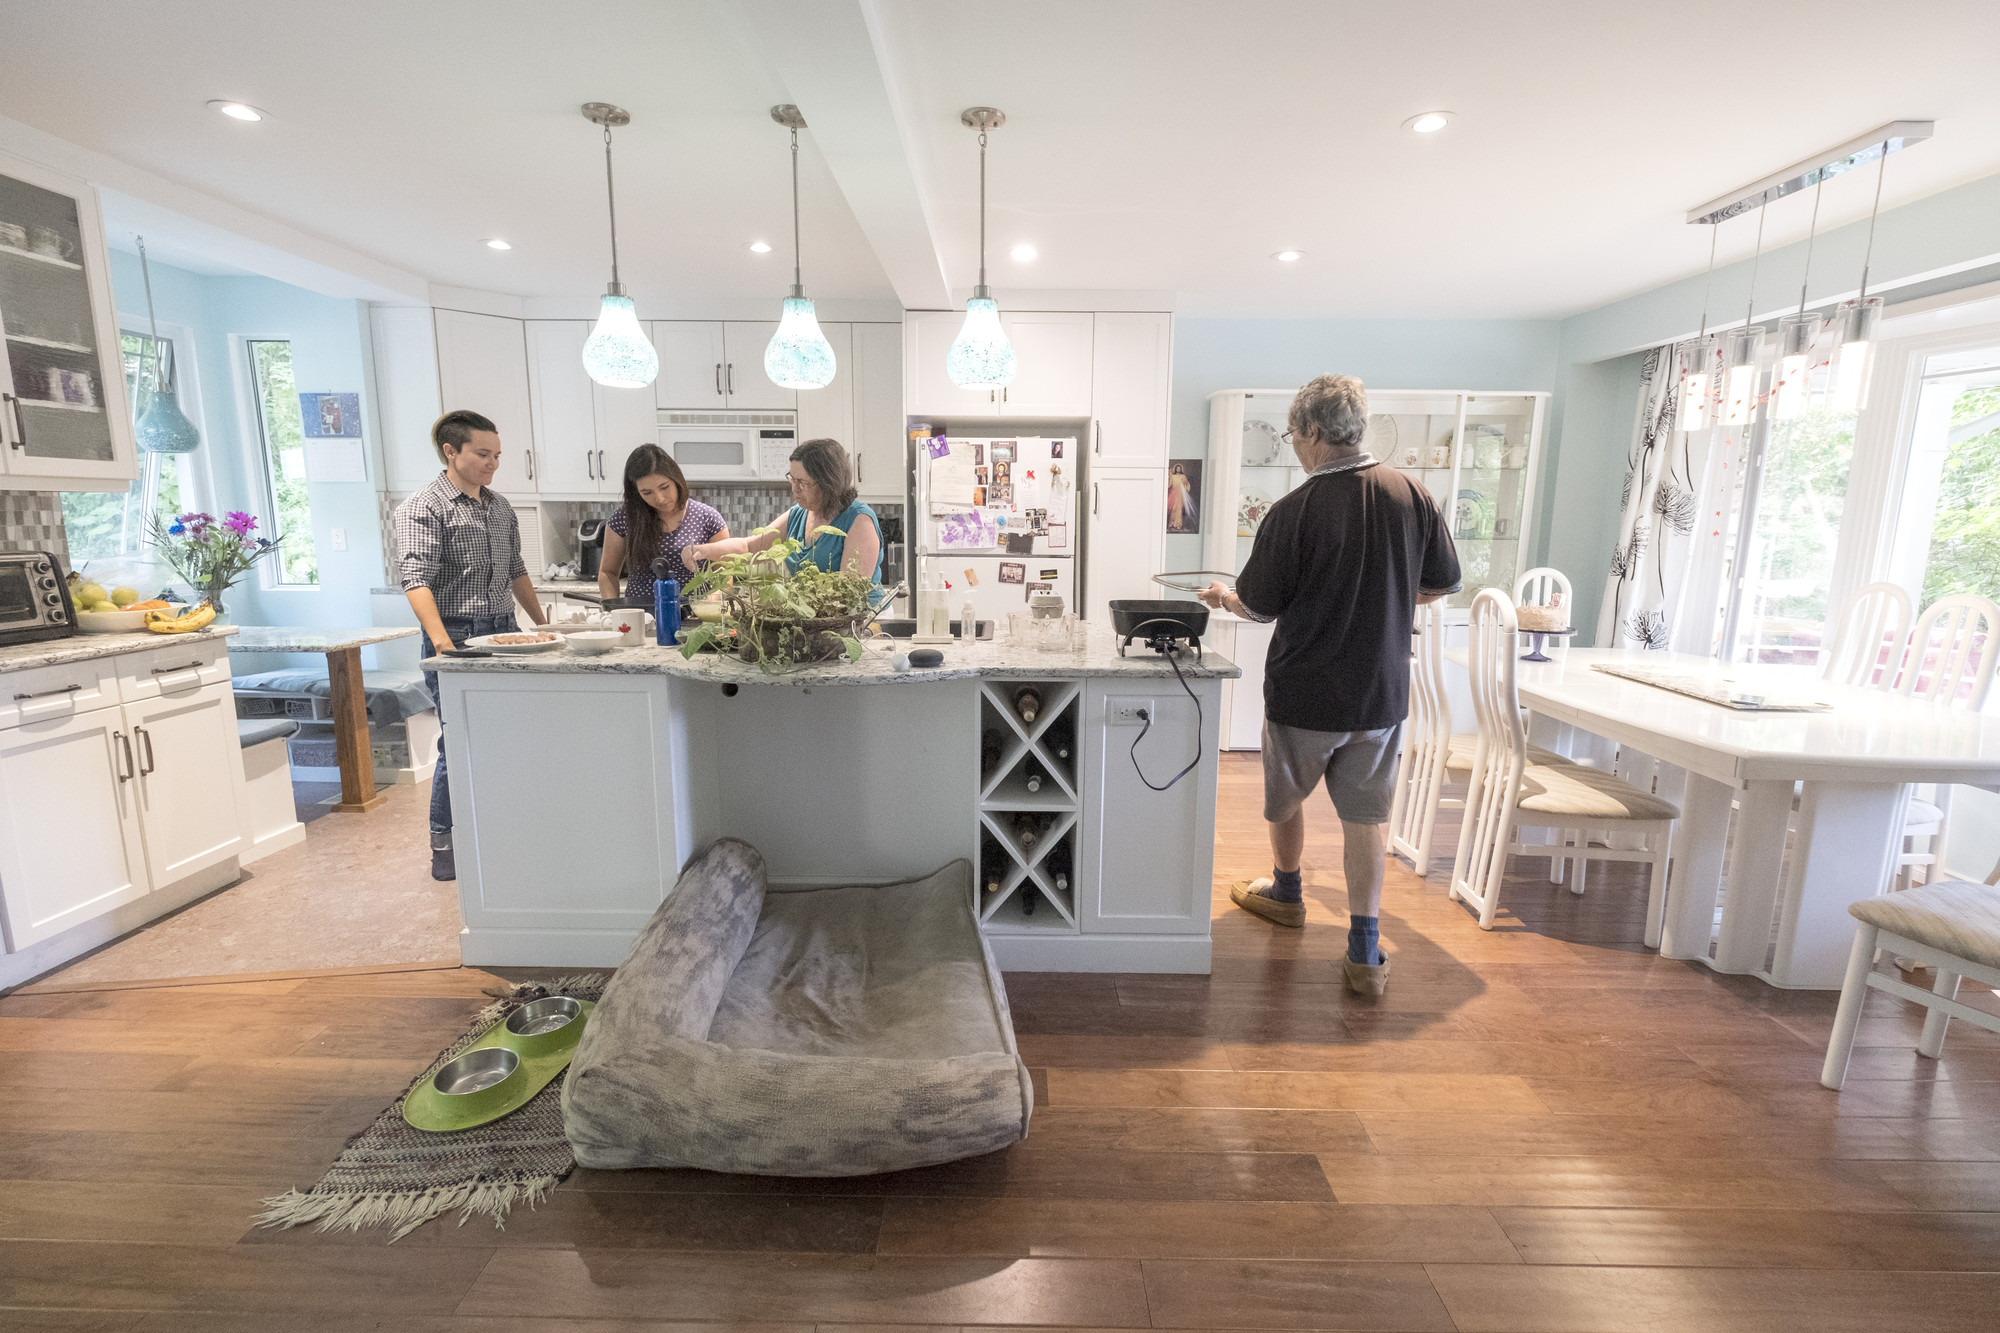 Two homestay parents and two homestay students work in a kitchen together